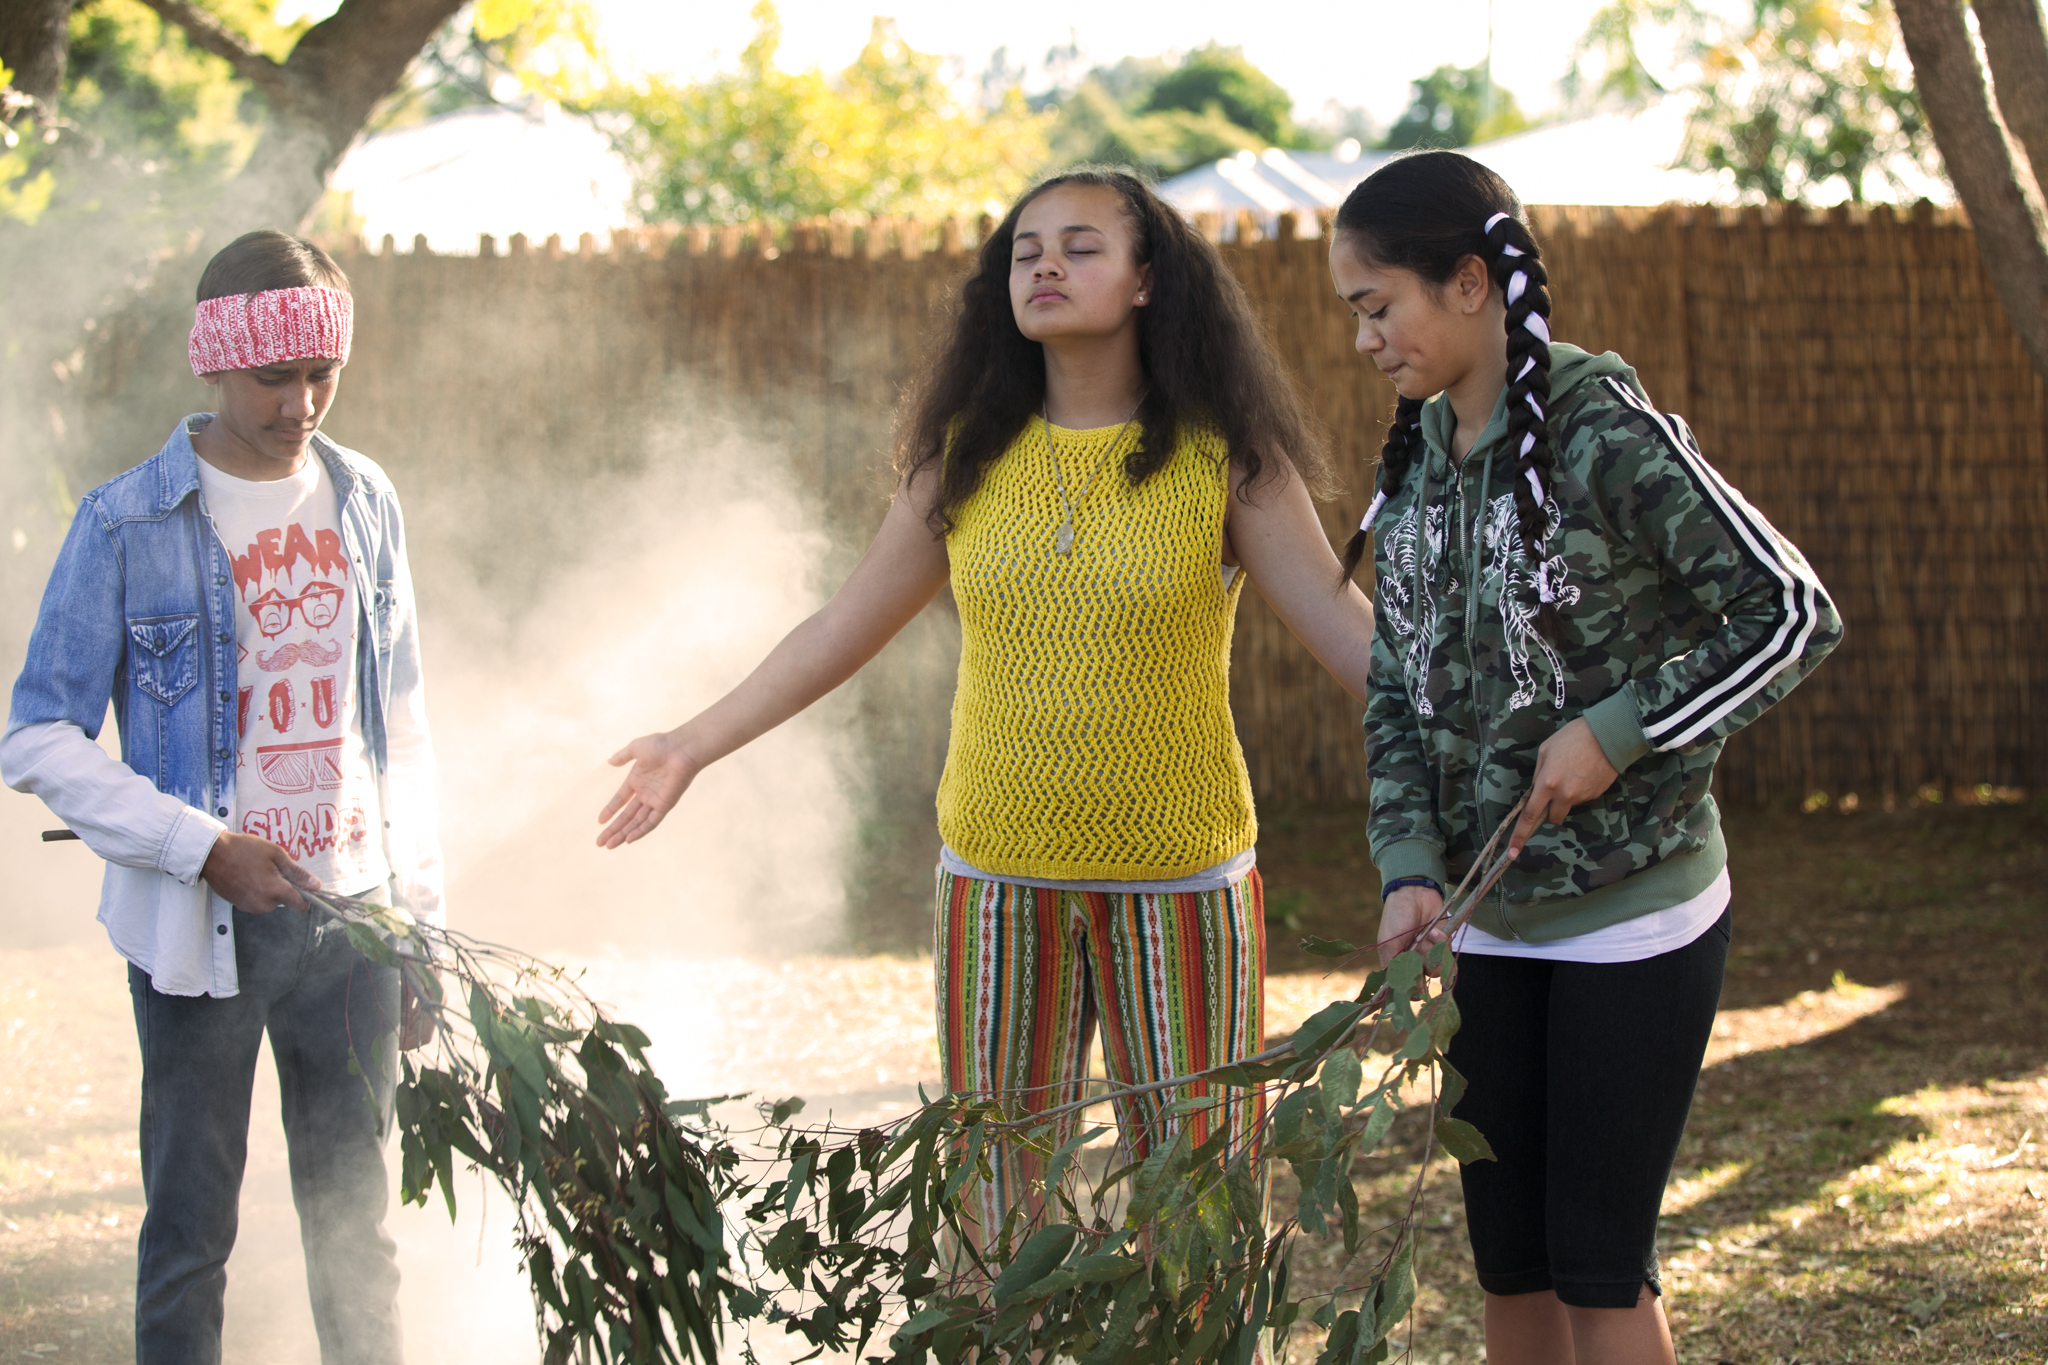 L—R, Tjiirdm McGuire as 'Yar', Kyliric Masella as 'Fuzzy', & Mairehau Grace as 'Tui'. Photo supplied by Magpie Pictures. Production Stills by Julian Panetta.